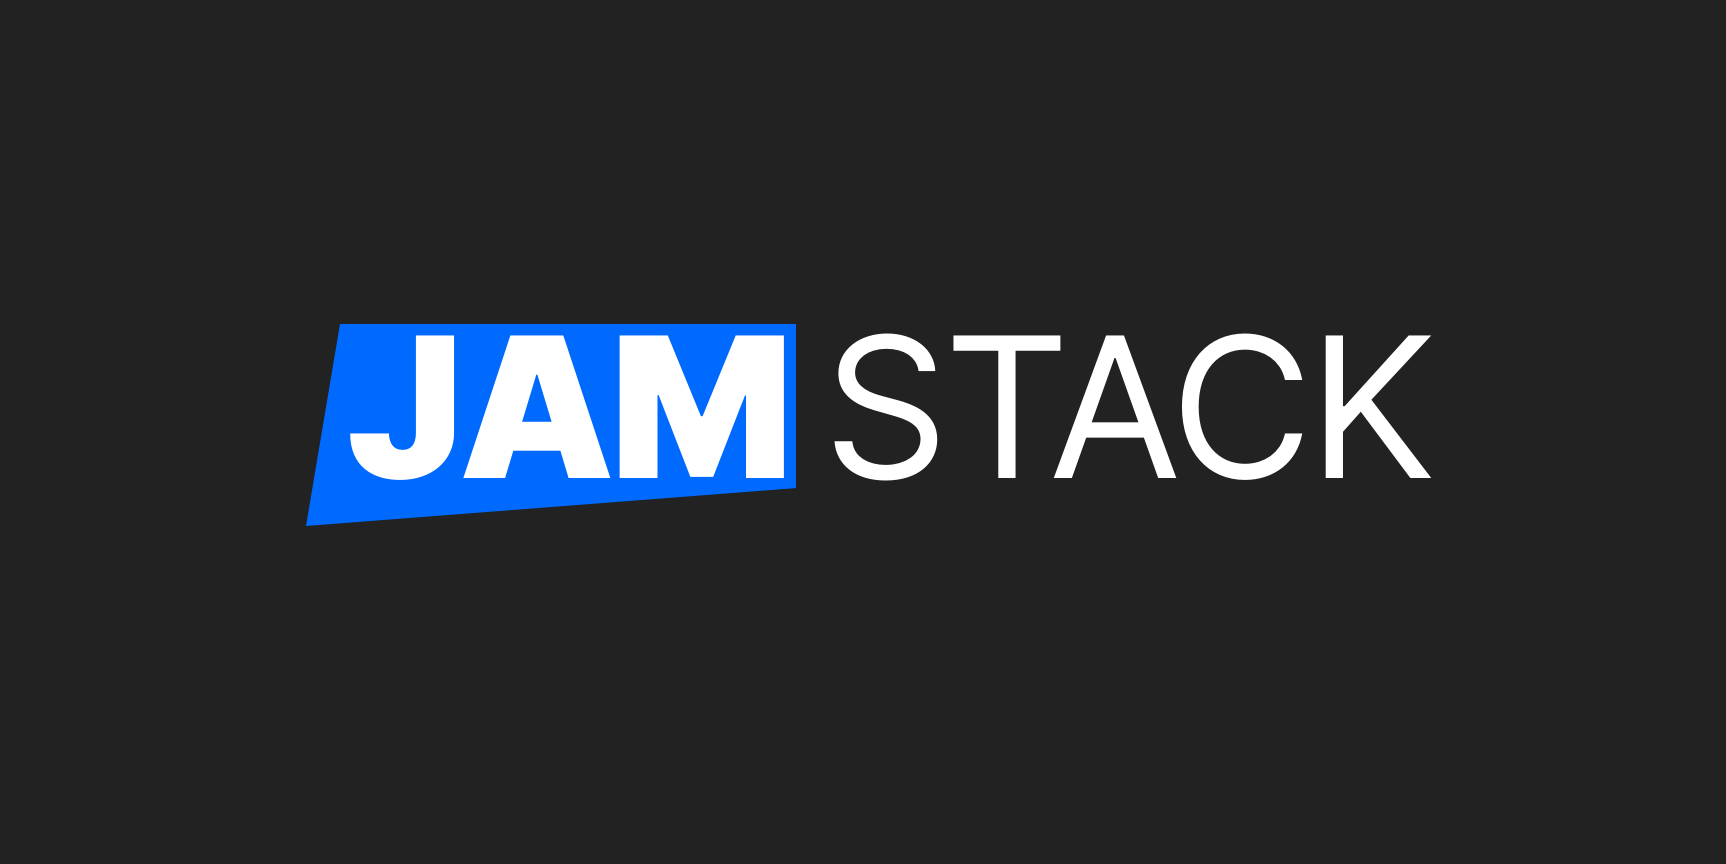 Useful APIs and services to know about when building a JAMstack application or website